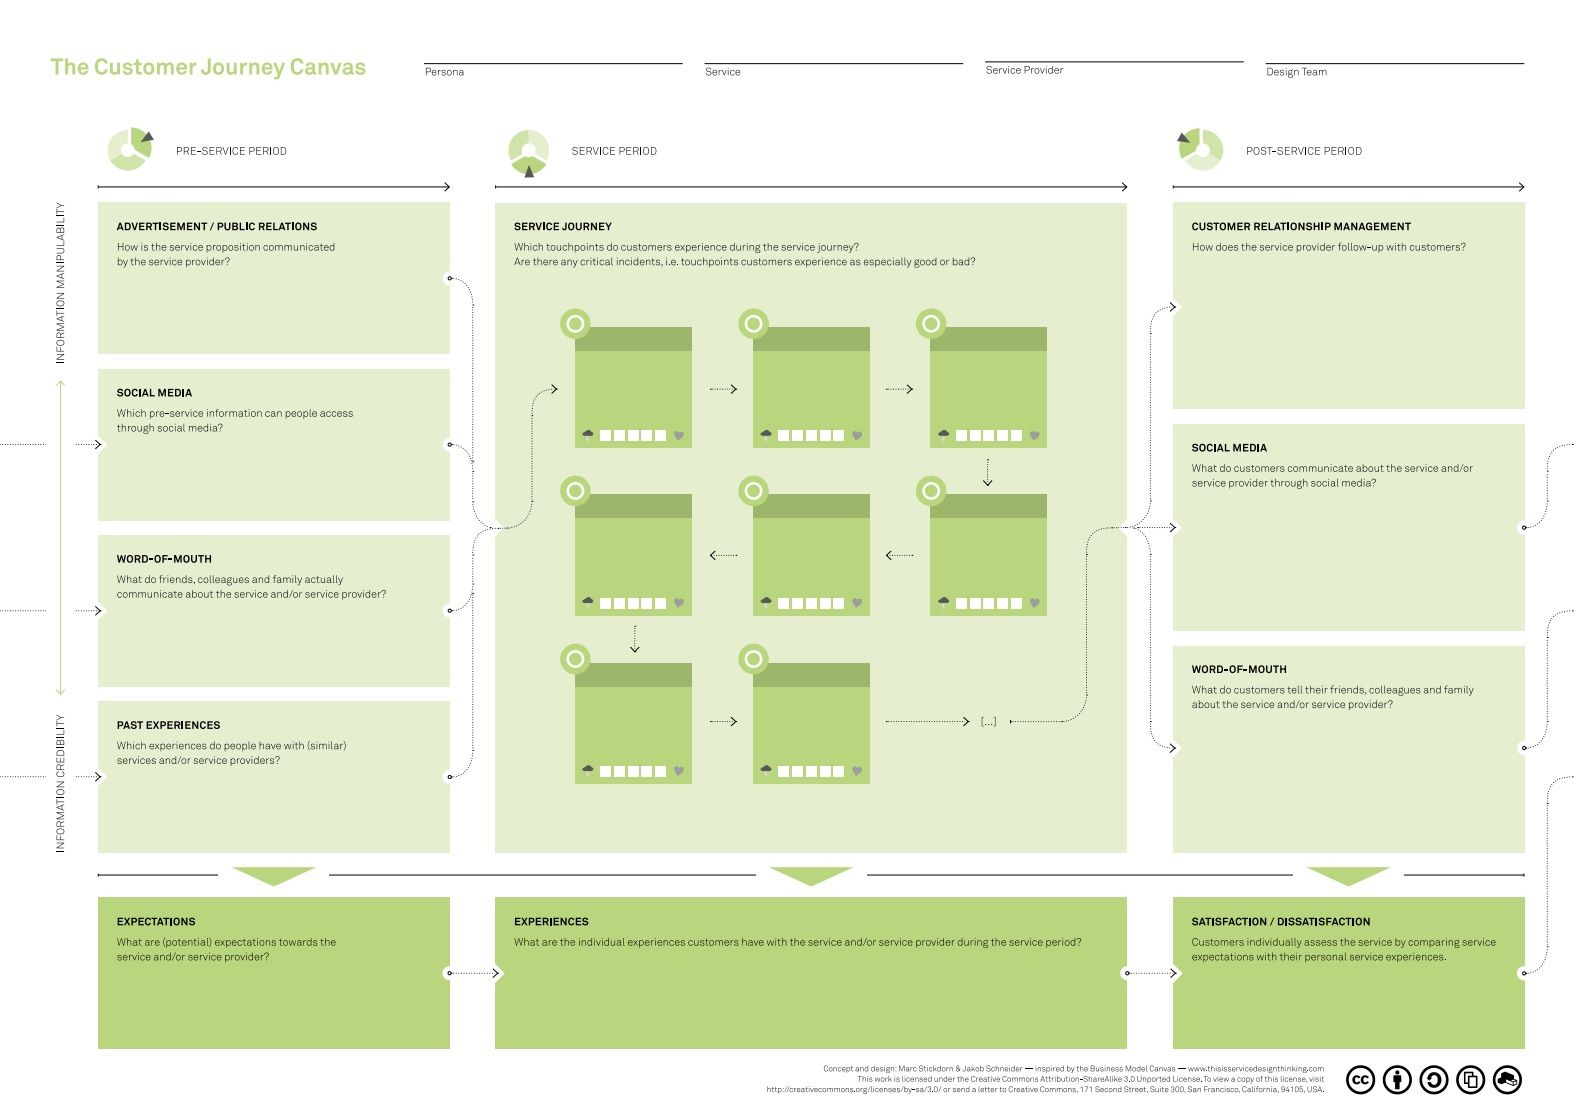 Customer Journey Canvas via This Is Service Design Thinking   Design on vision map, apple map, positioning map, customer experience, strategy map, experience map, social map, customer contact, search map, customer 360 view of architecture, customer collaboration, brand map,